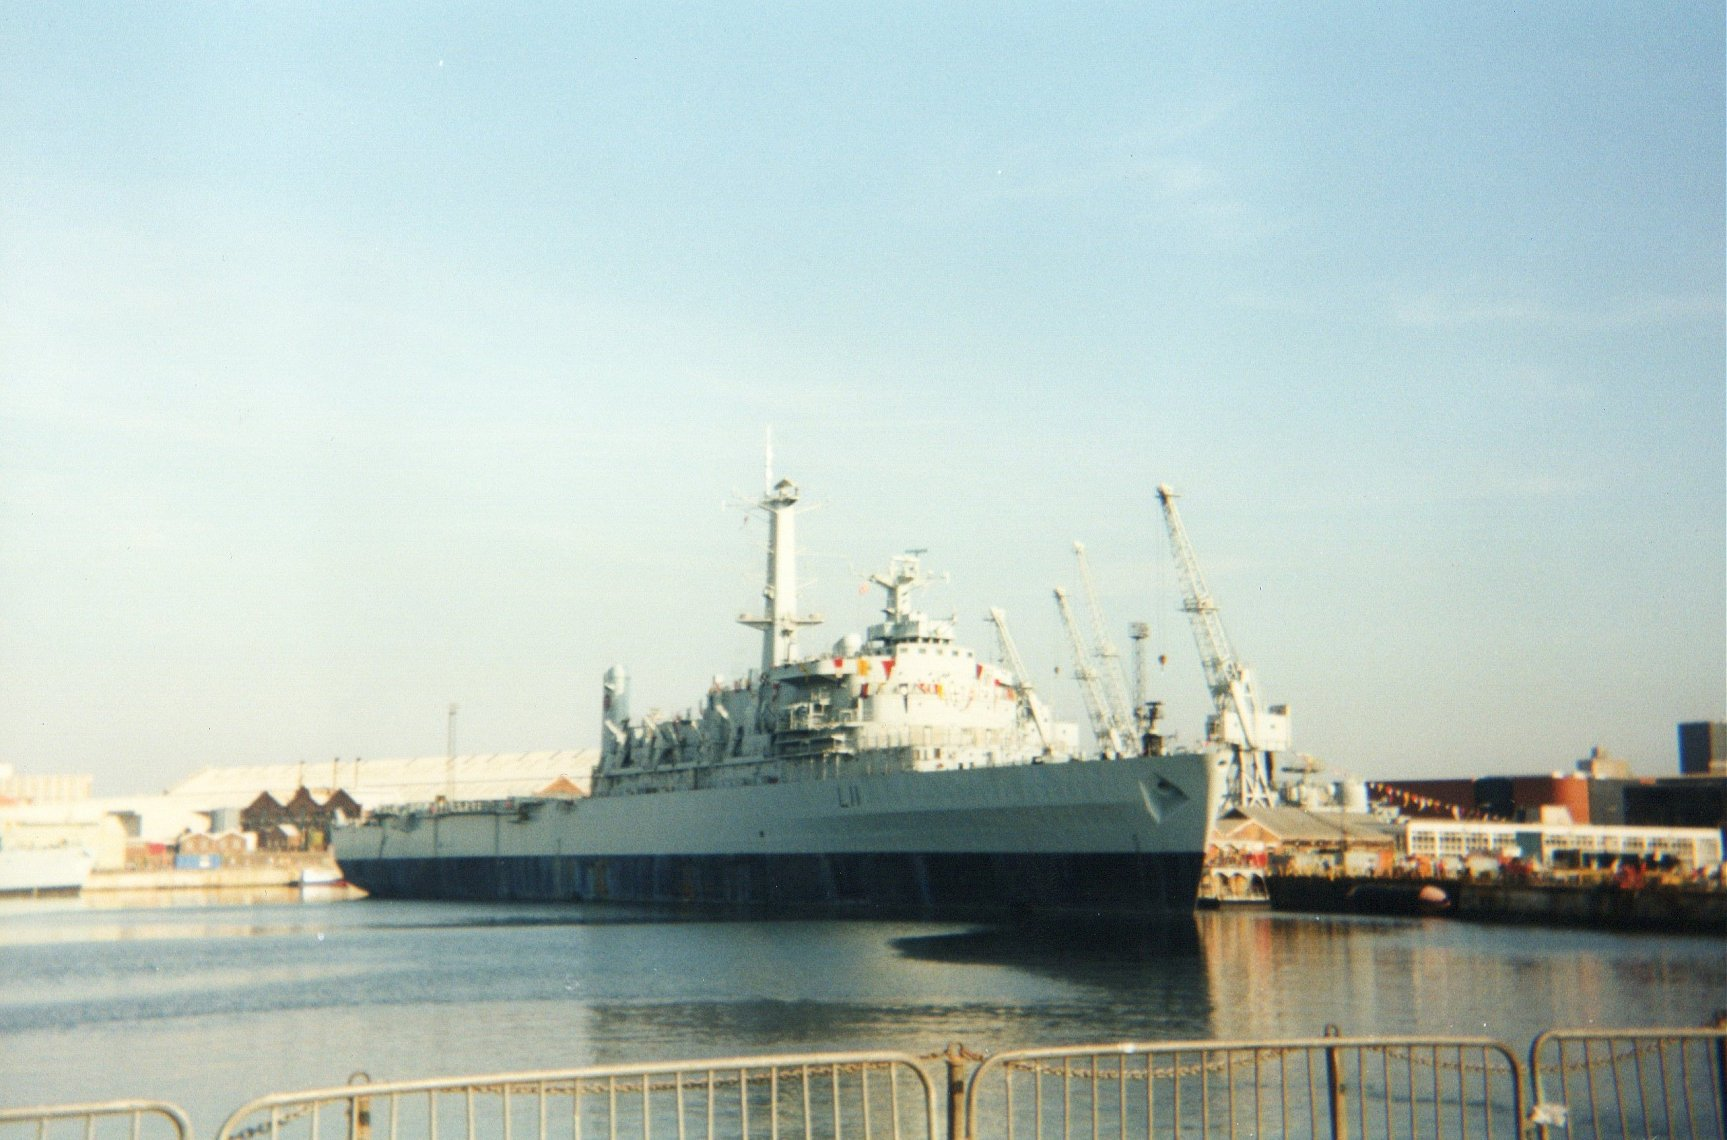 Assault vessel H.M.S. Intrepid at Portsmouth Navy Days 1998